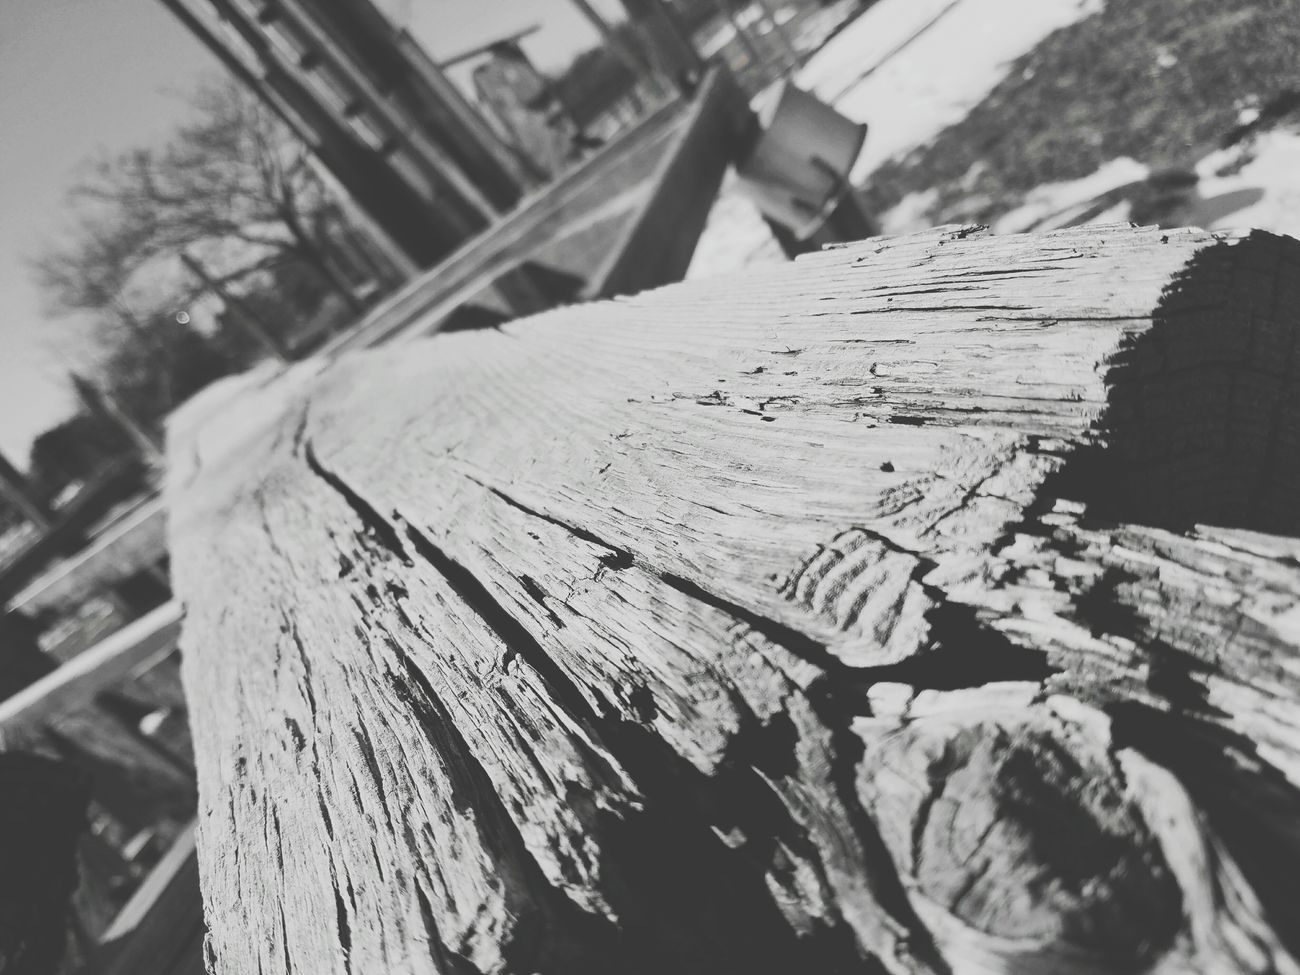 Wood - Material Timber Plank Log Black And White Photography Outdoors Nature Day Nature_collection Landscape_collection EyeEmNatureLover Real Photography Artgallery Getting Creative City Real Life Live, Love, Laugh Learn & Shoot: Balancing Elements Leisure Activity Woodland Walk Artphotography EyeEm Best Shots - Nature EyeEm Best Shots - Black + White Enjoying The Sights Lovelovelove Wood Carving Close-up